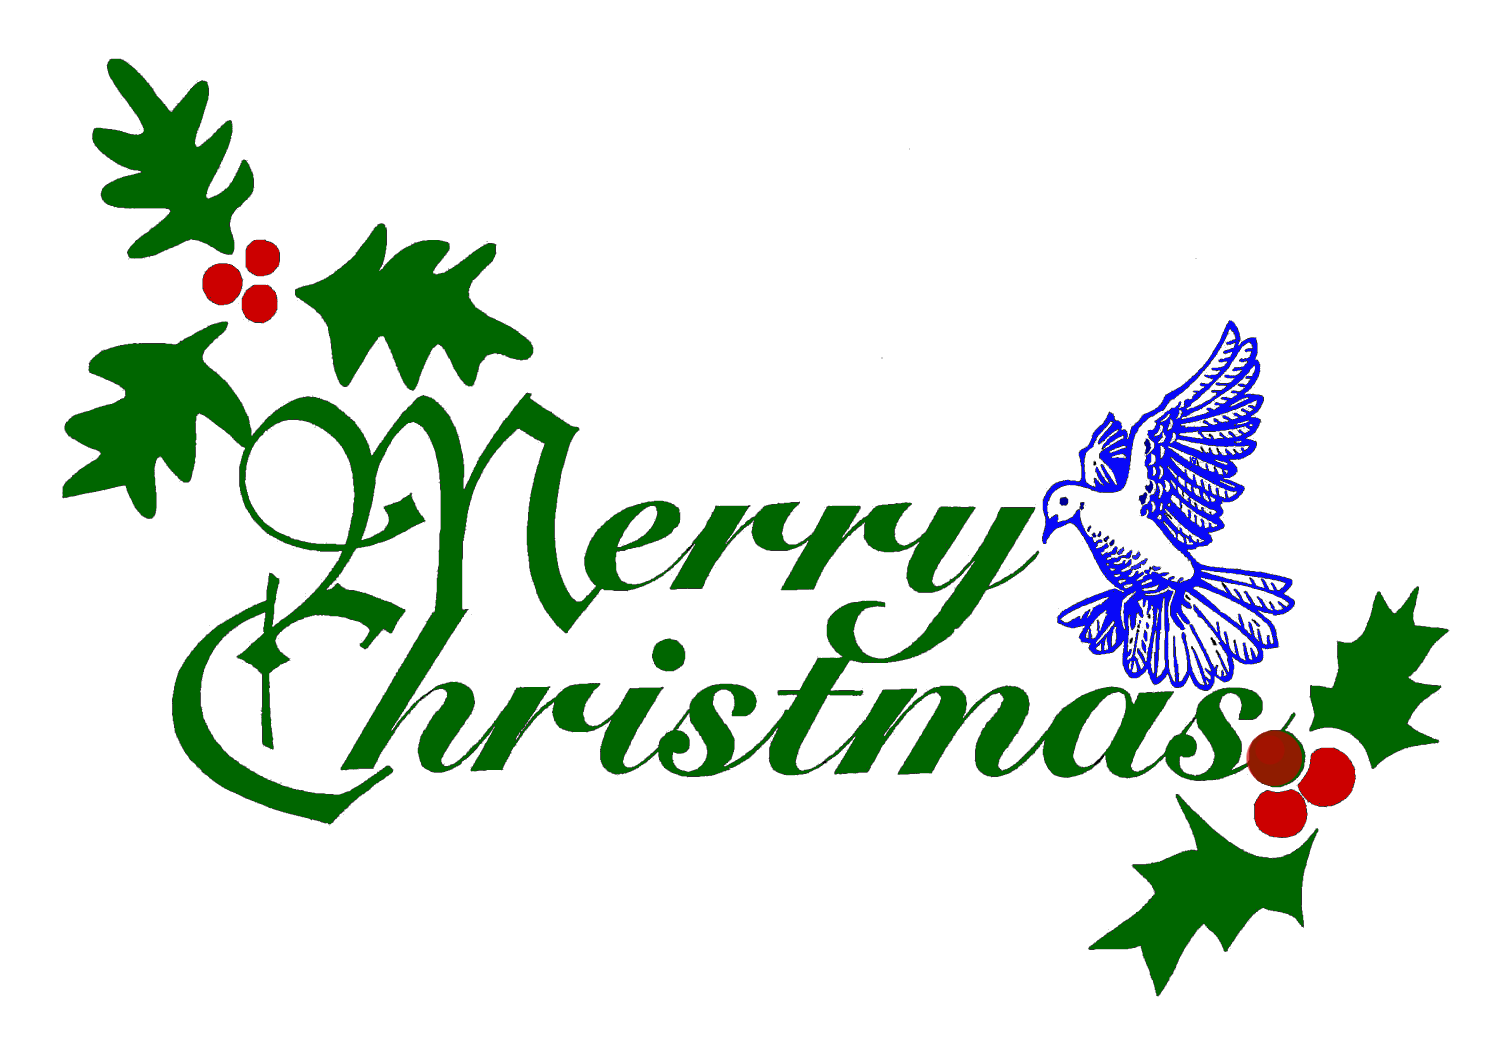 Png For Christmas - Free Download Of Merry Christmas Icon Clipart #27756 - Free Icons ...